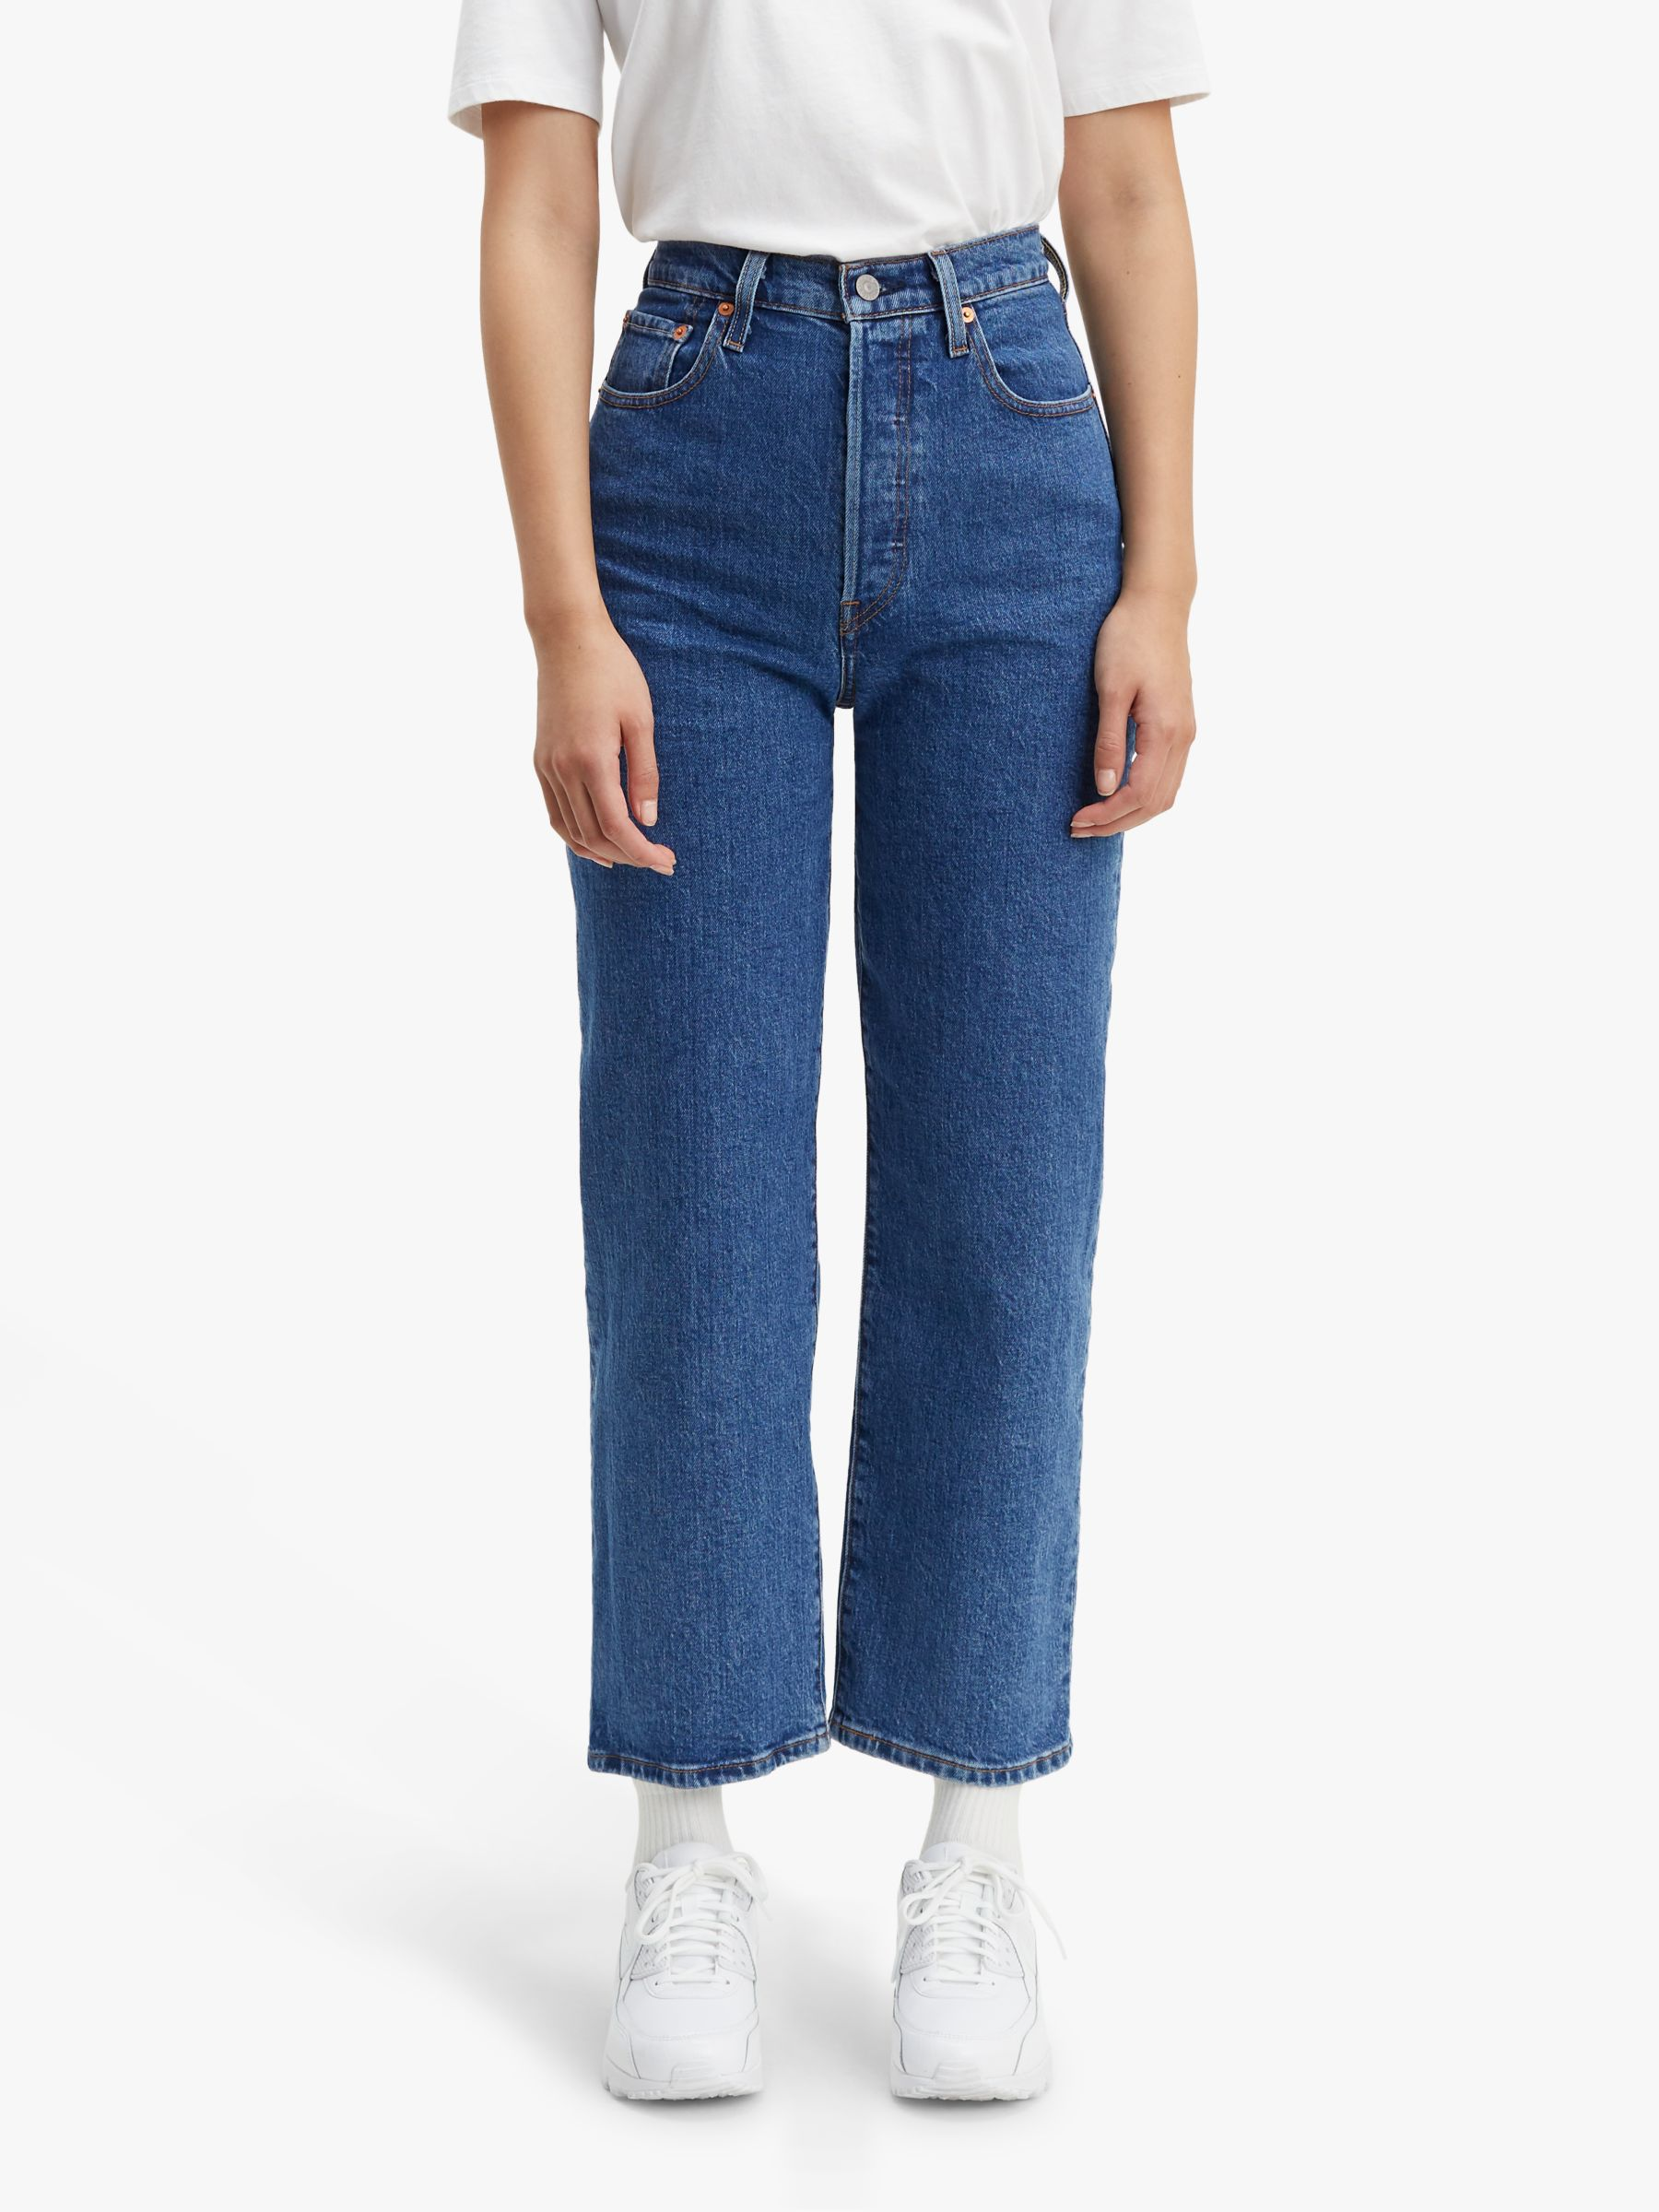 Buy Levi's Ribcage Straight Ankle Jeans, Georgie, W27/L27 Online at johnlewis.com